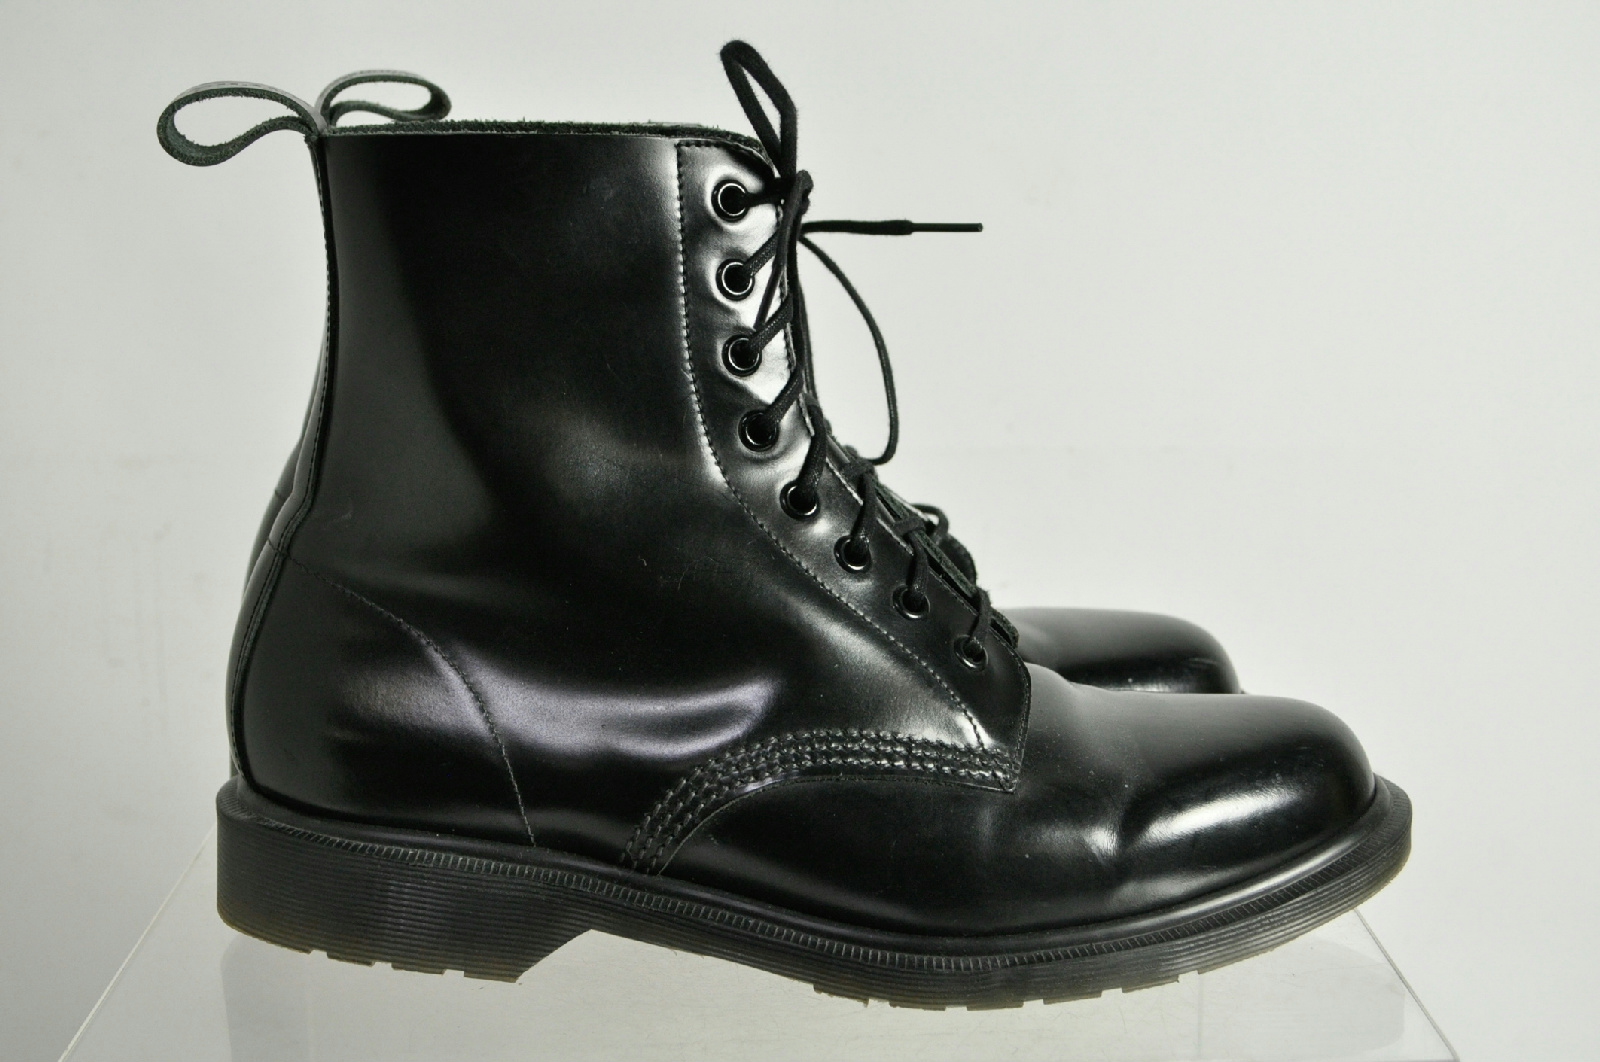 dr martens air wair solid black high top laces boots size 8. Black Bedroom Furniture Sets. Home Design Ideas